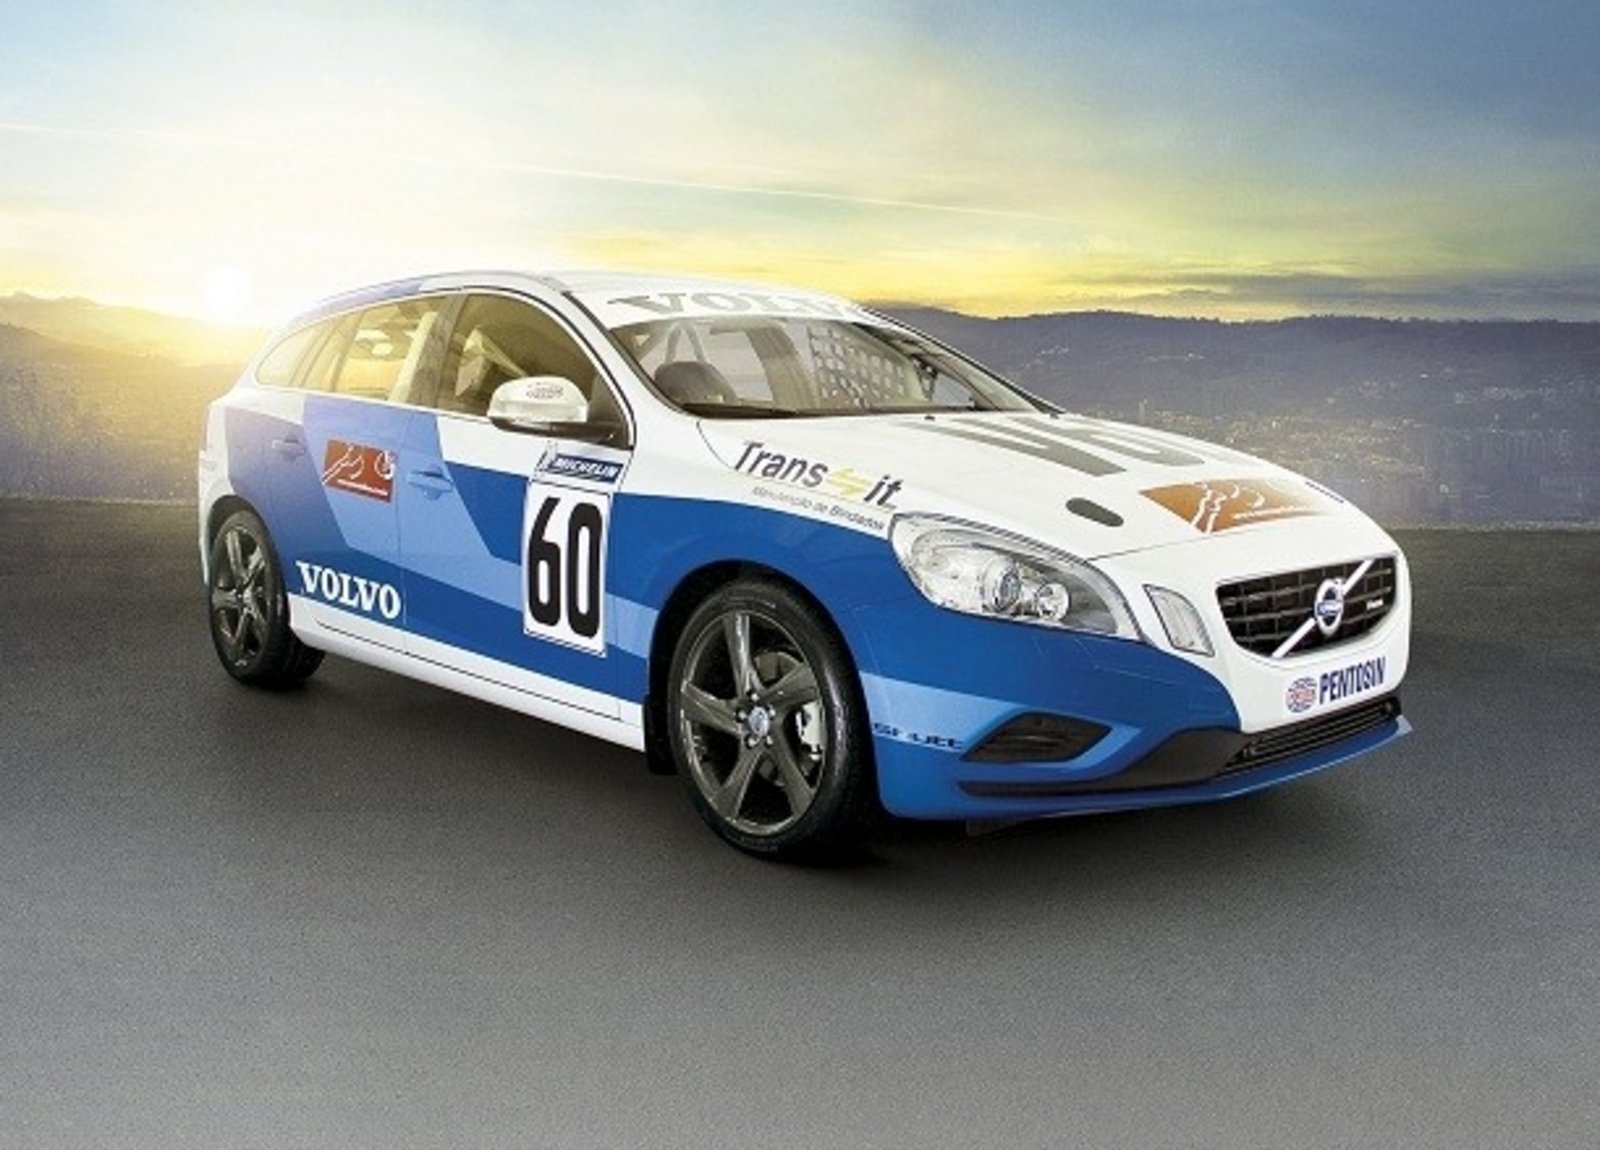 2013 Volvo V60 Racing Wagon Review - Top Speed